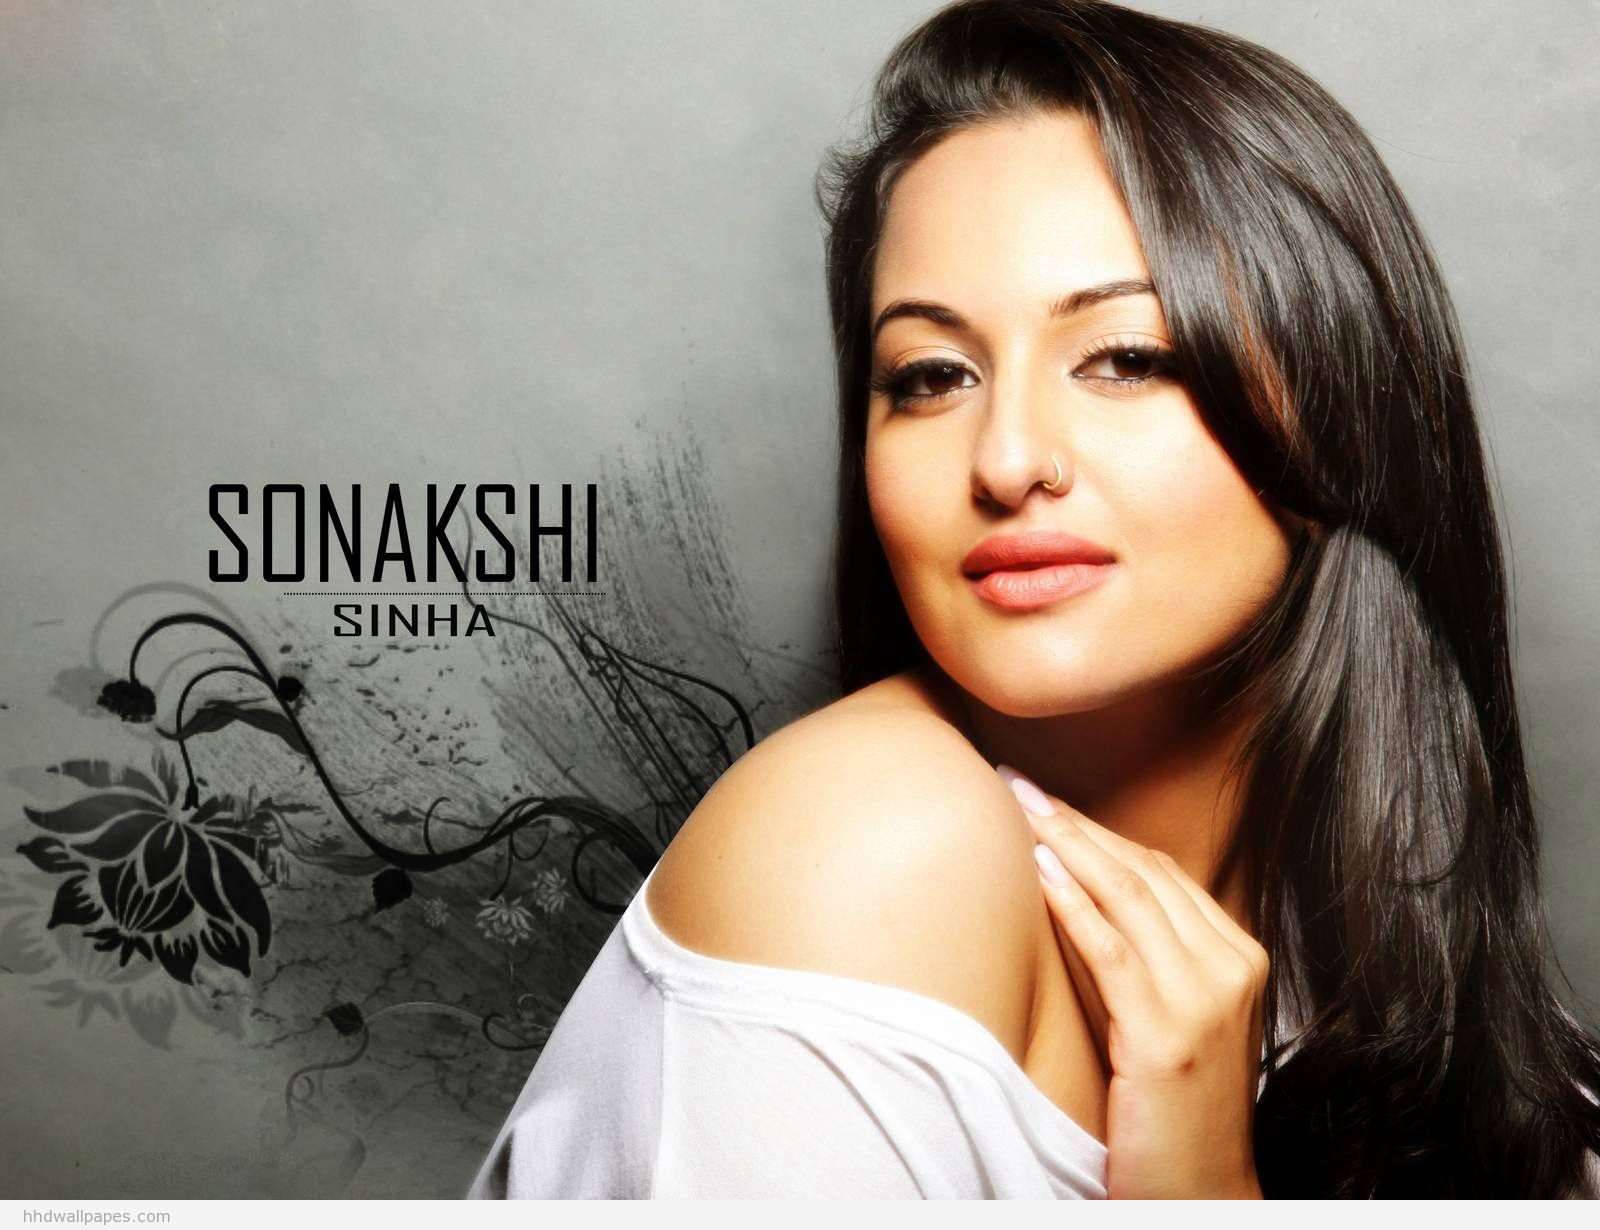 download free hd wallpapers of sonakshi sinha ~ download free hd